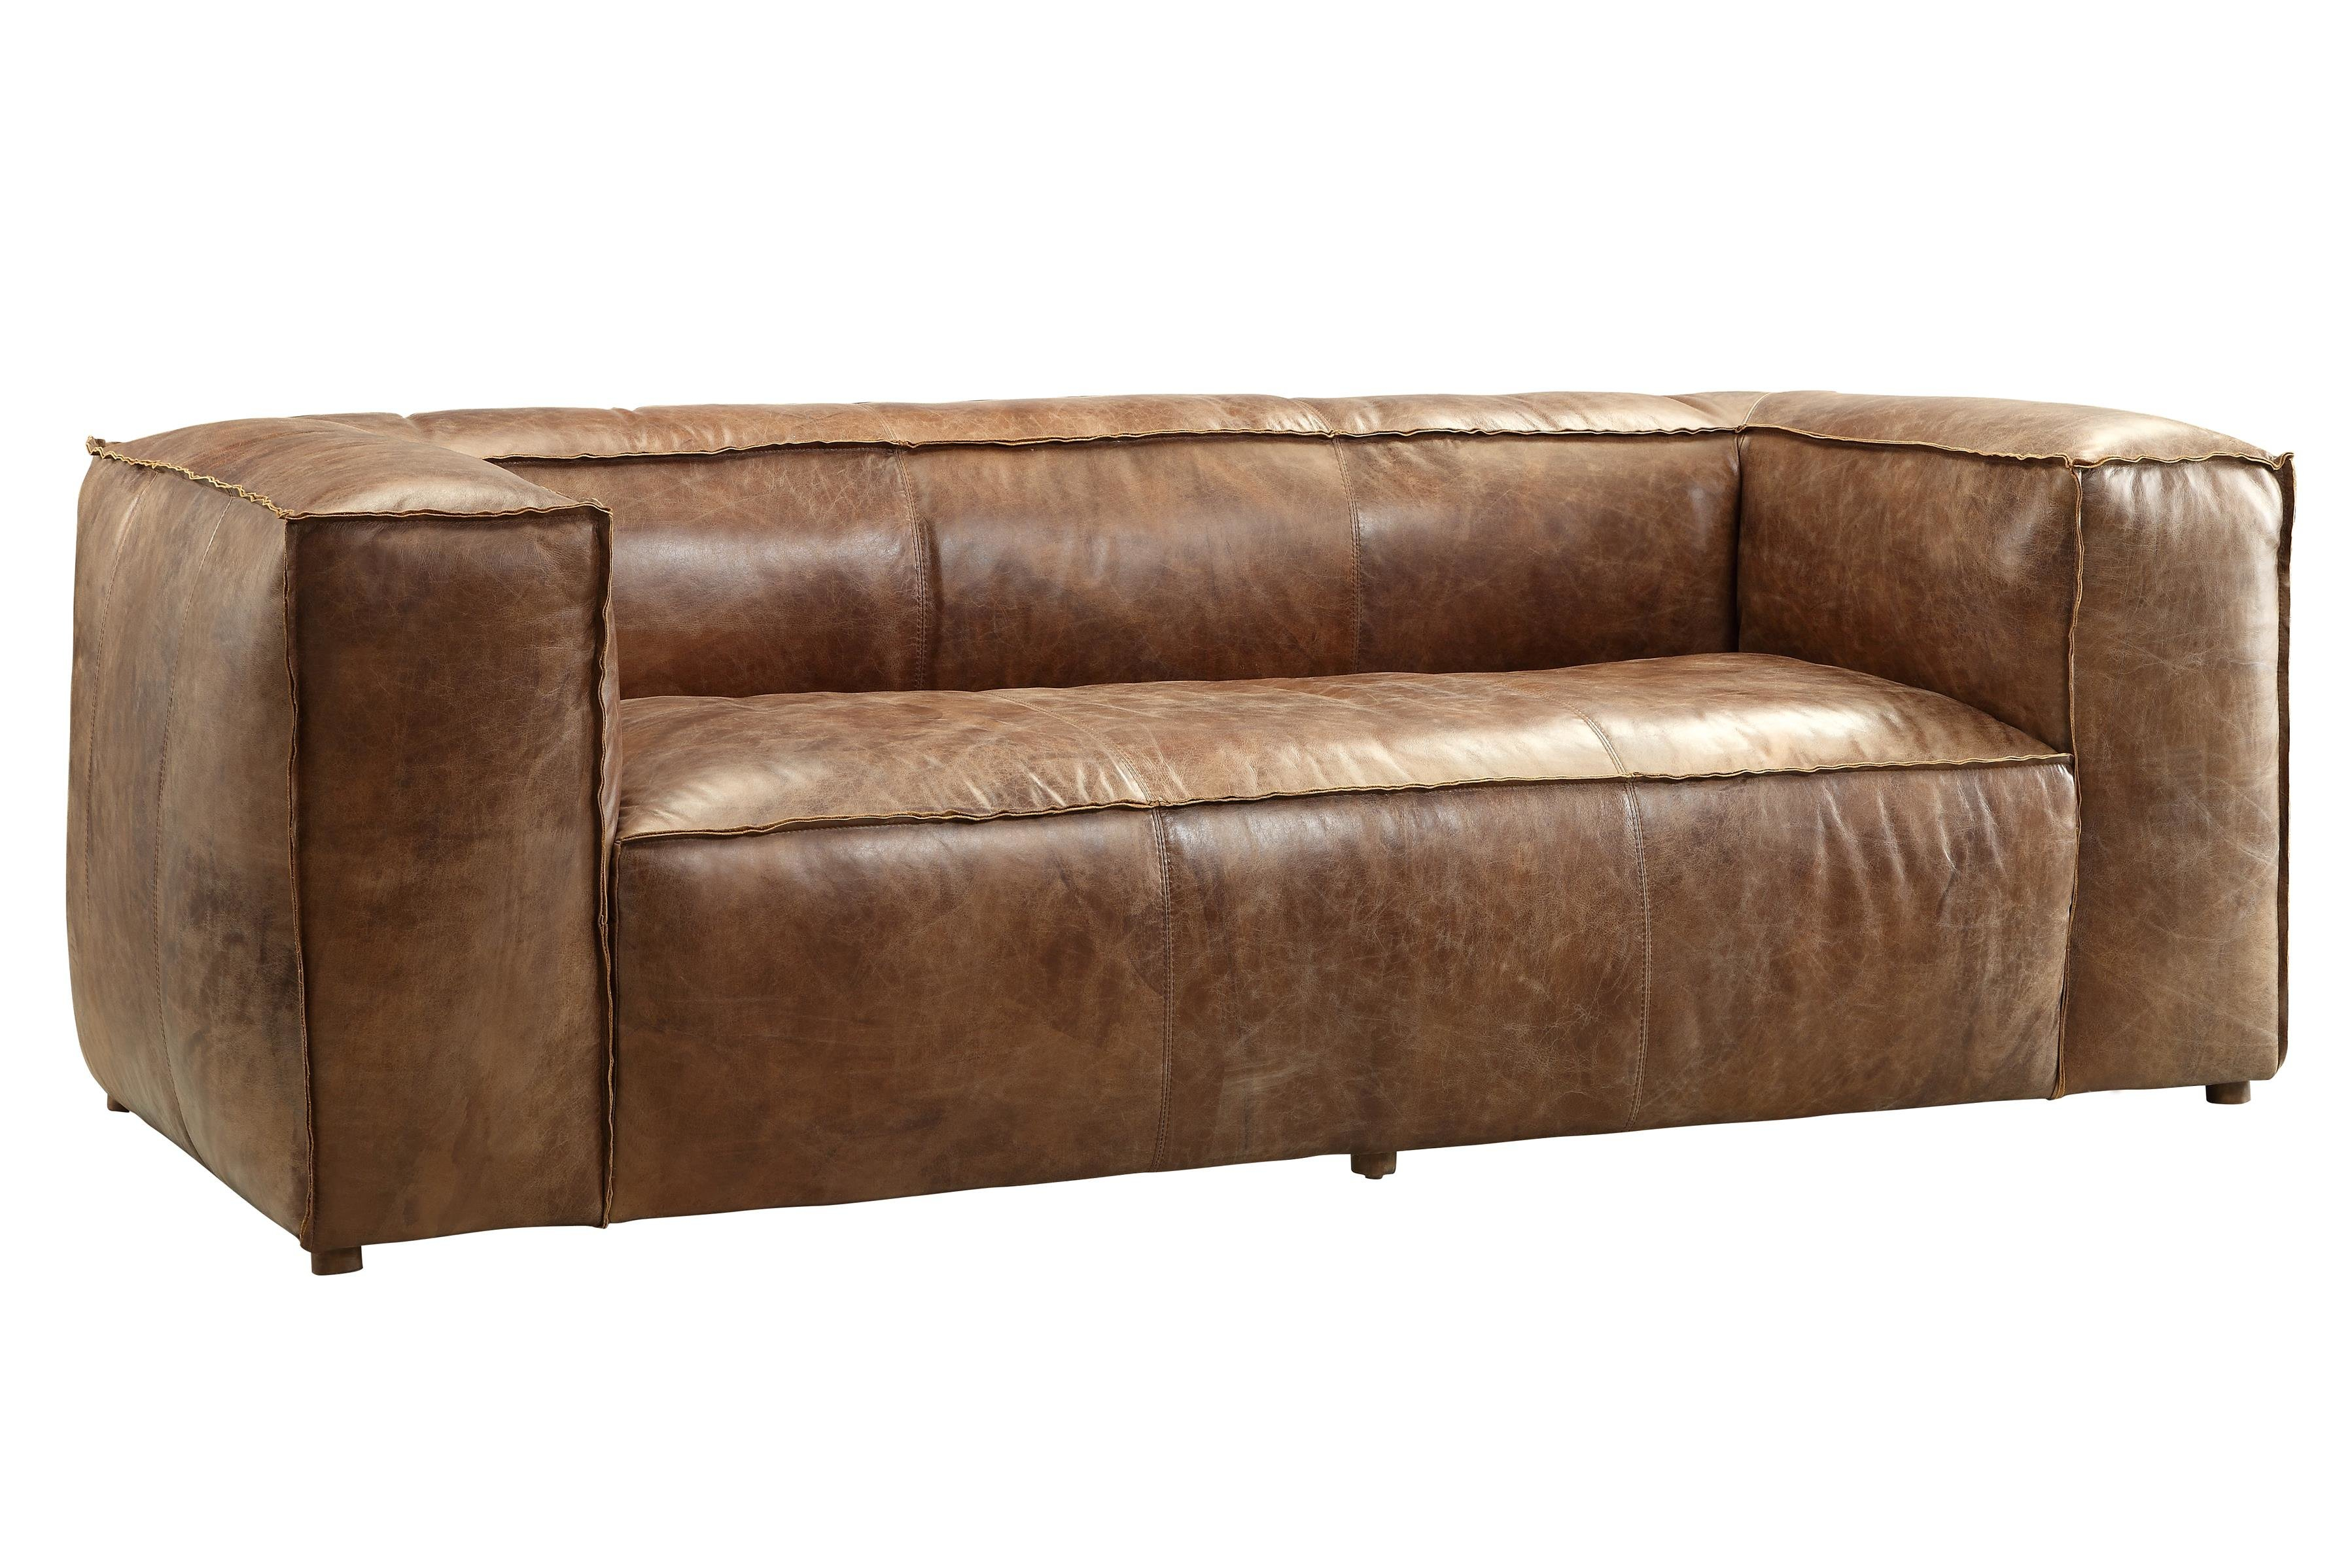 Annessia Leather Sofa & Reviews | Allmodern Regarding Grandin Leather Sofa Chairs (Photo 17 of 25)